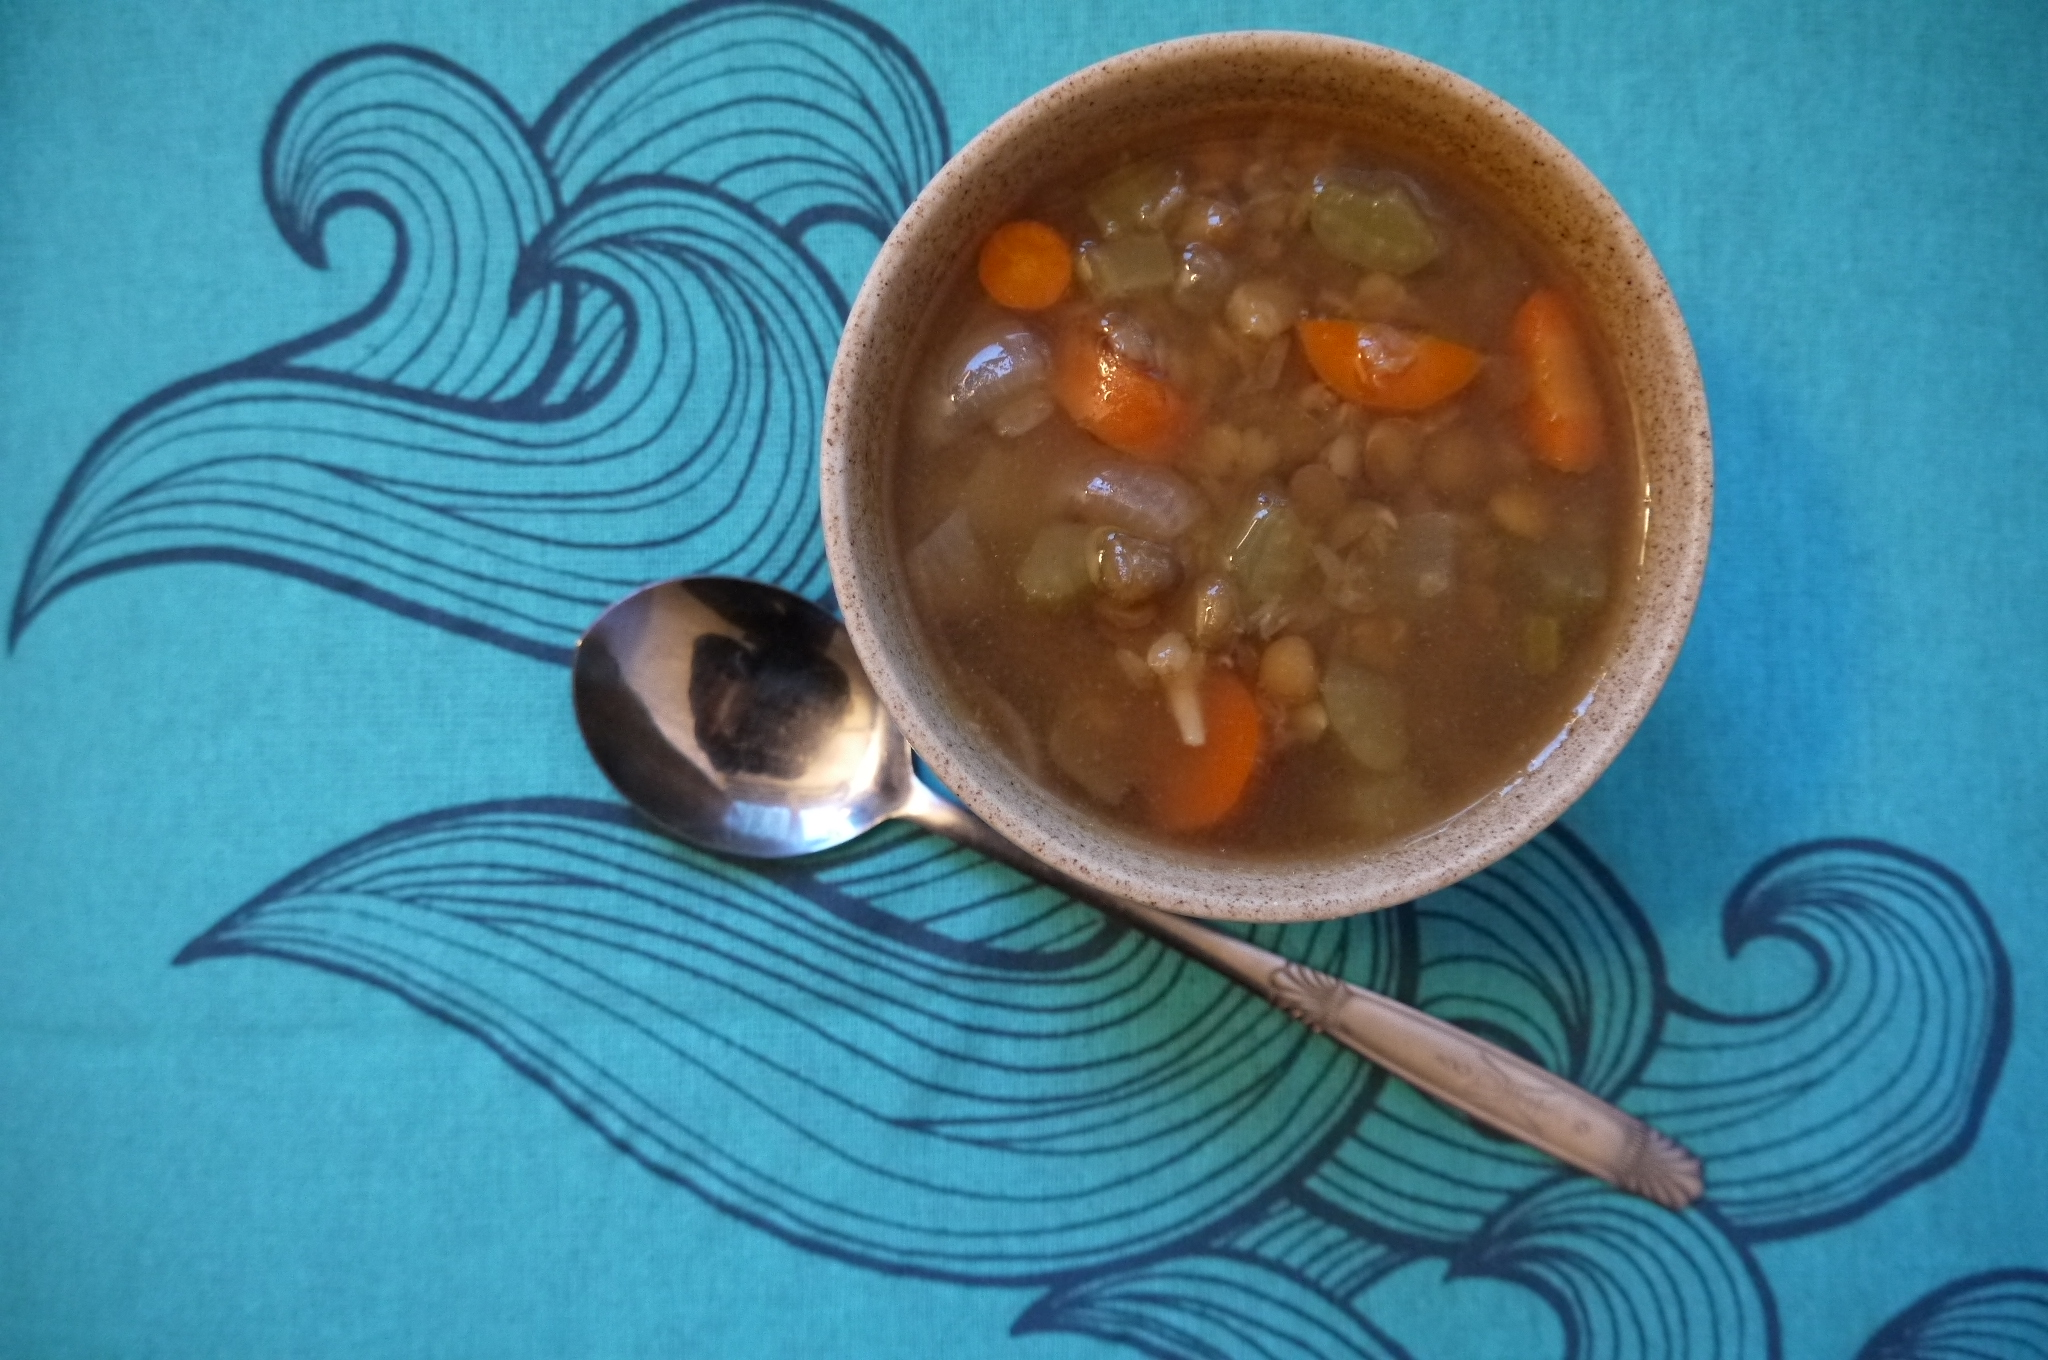 lentil soup | Trust in Kim (she will guide thee)